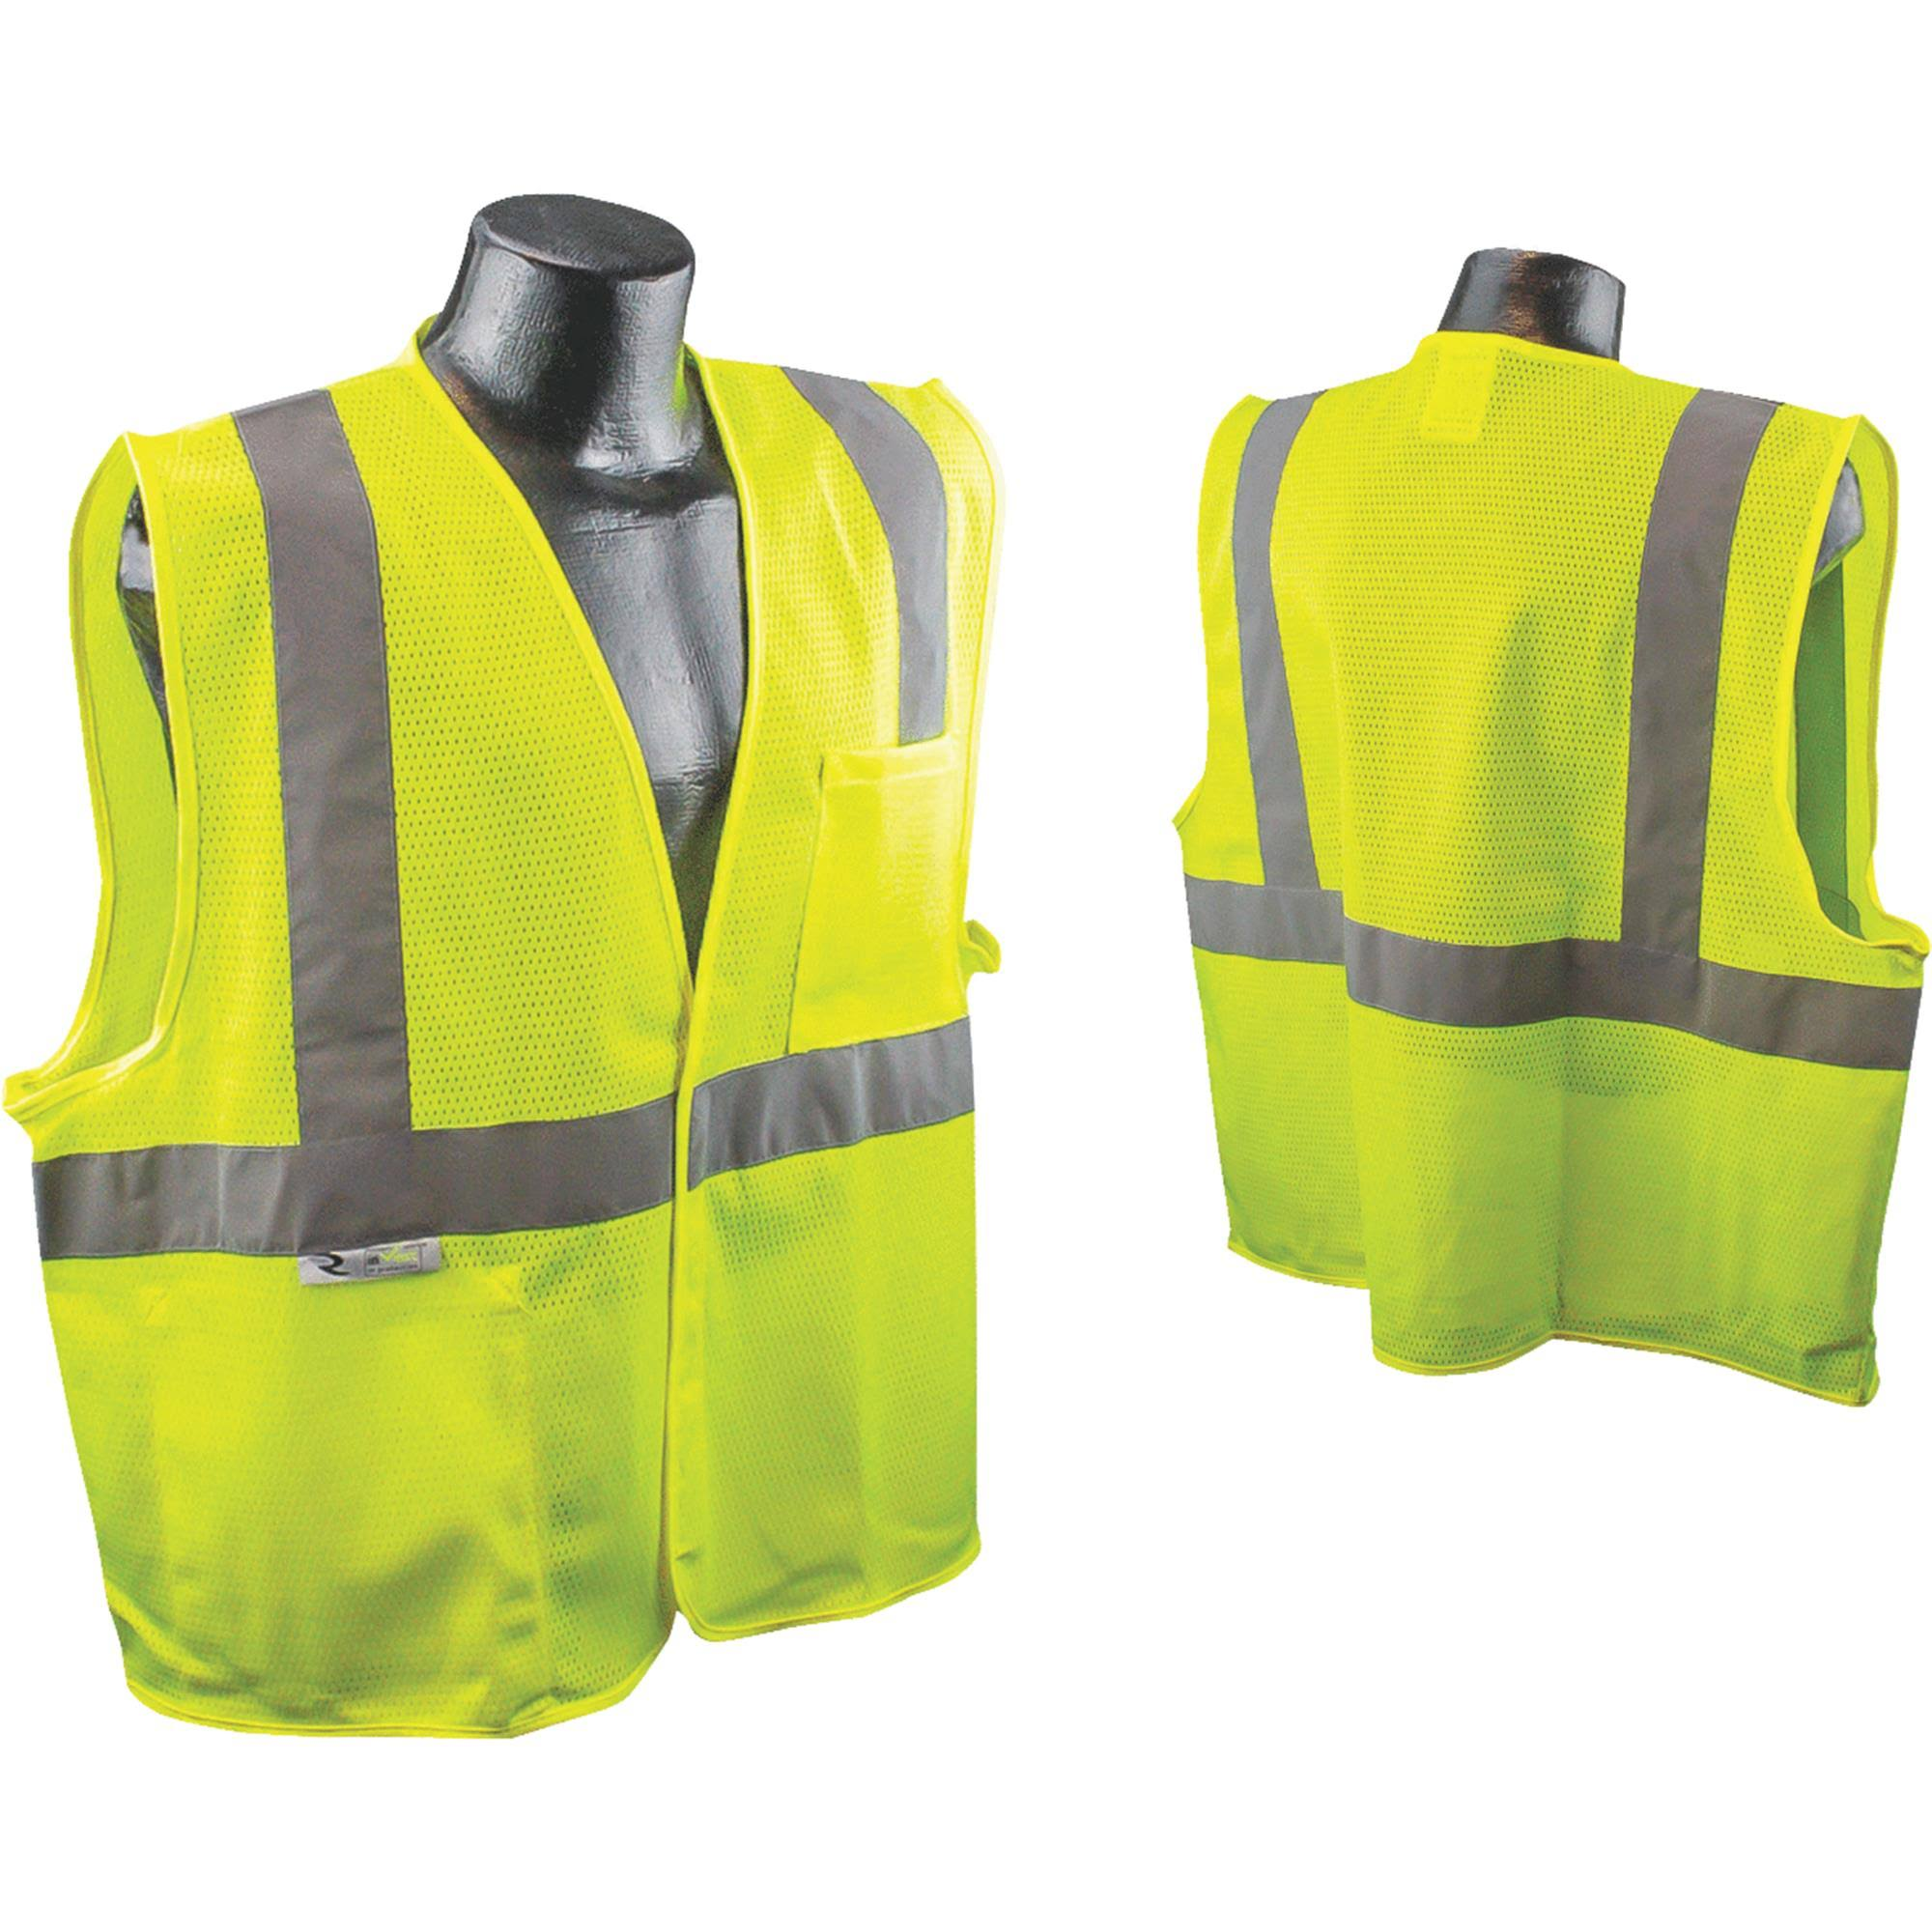 Radians SV2GMXL Radwear High Visibility Class 2 Safety Vest - Yellow, X-Large